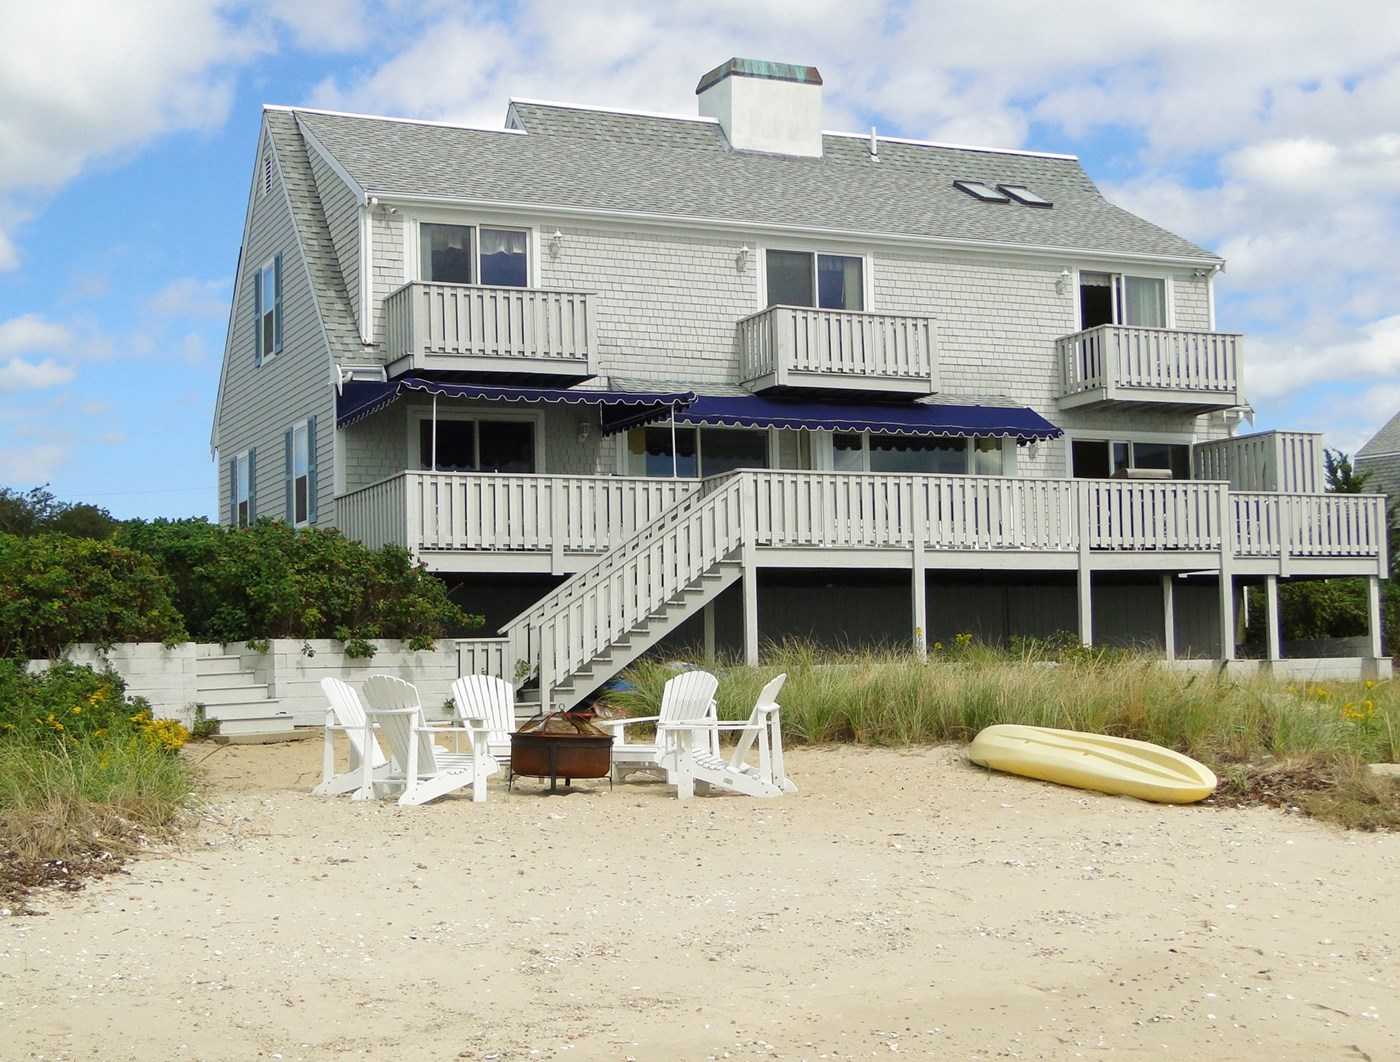 Remarkable Yarmouth Vacation Rental Home In Cape Cod Ma Right On Ocean Download Free Architecture Designs Scobabritishbridgeorg